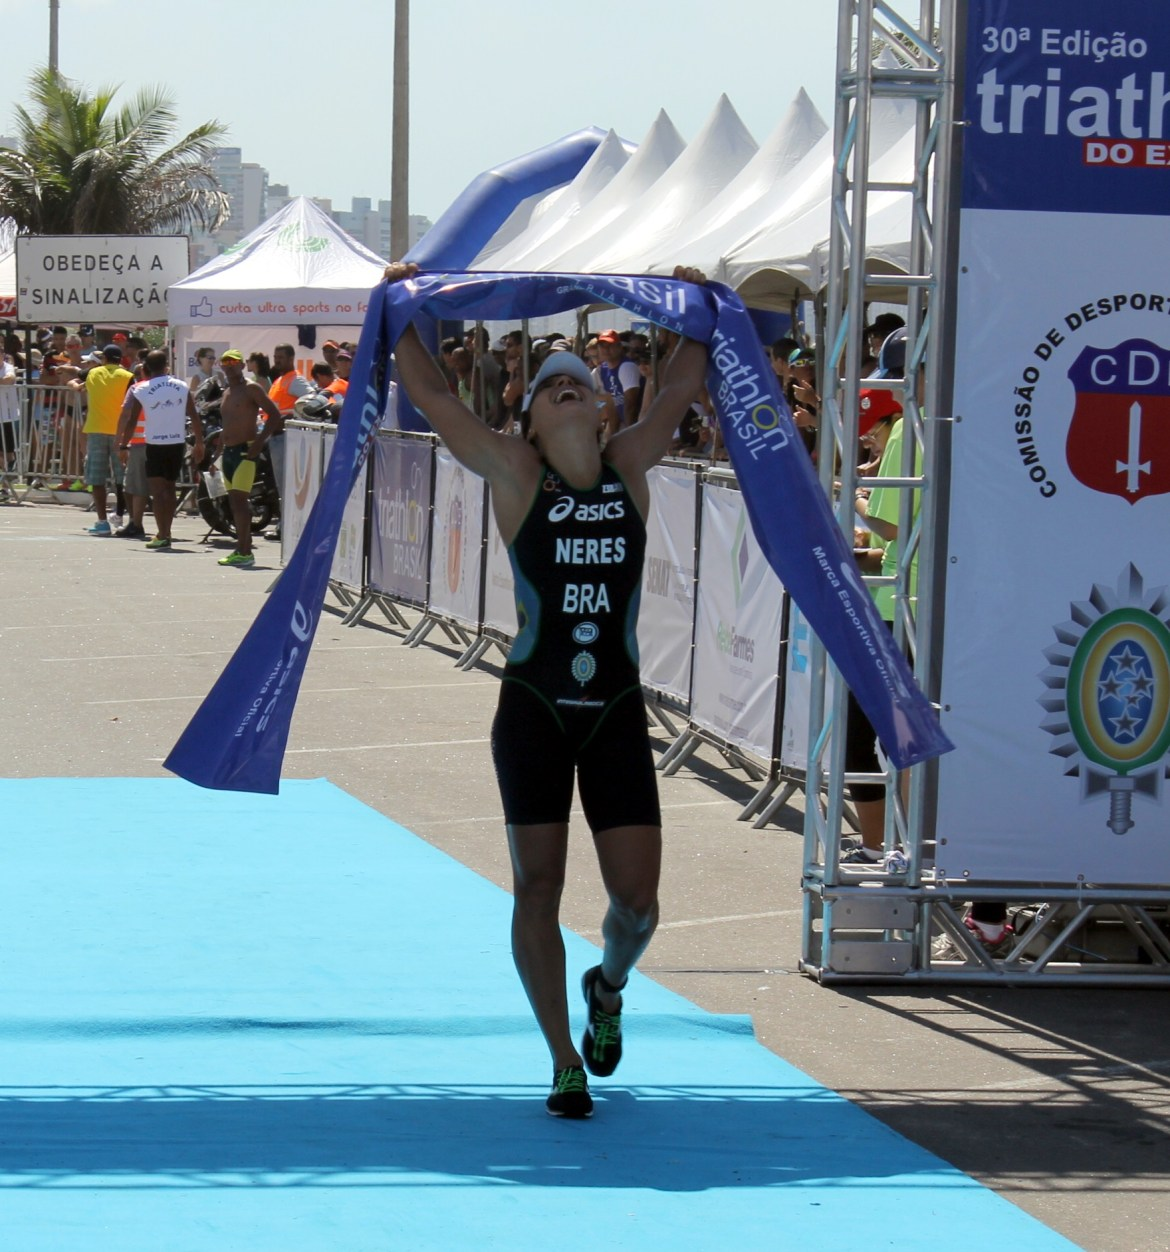 Beatriz Neres, campeã do 30º Triathlon do Exército - Foto: Pauta Livre